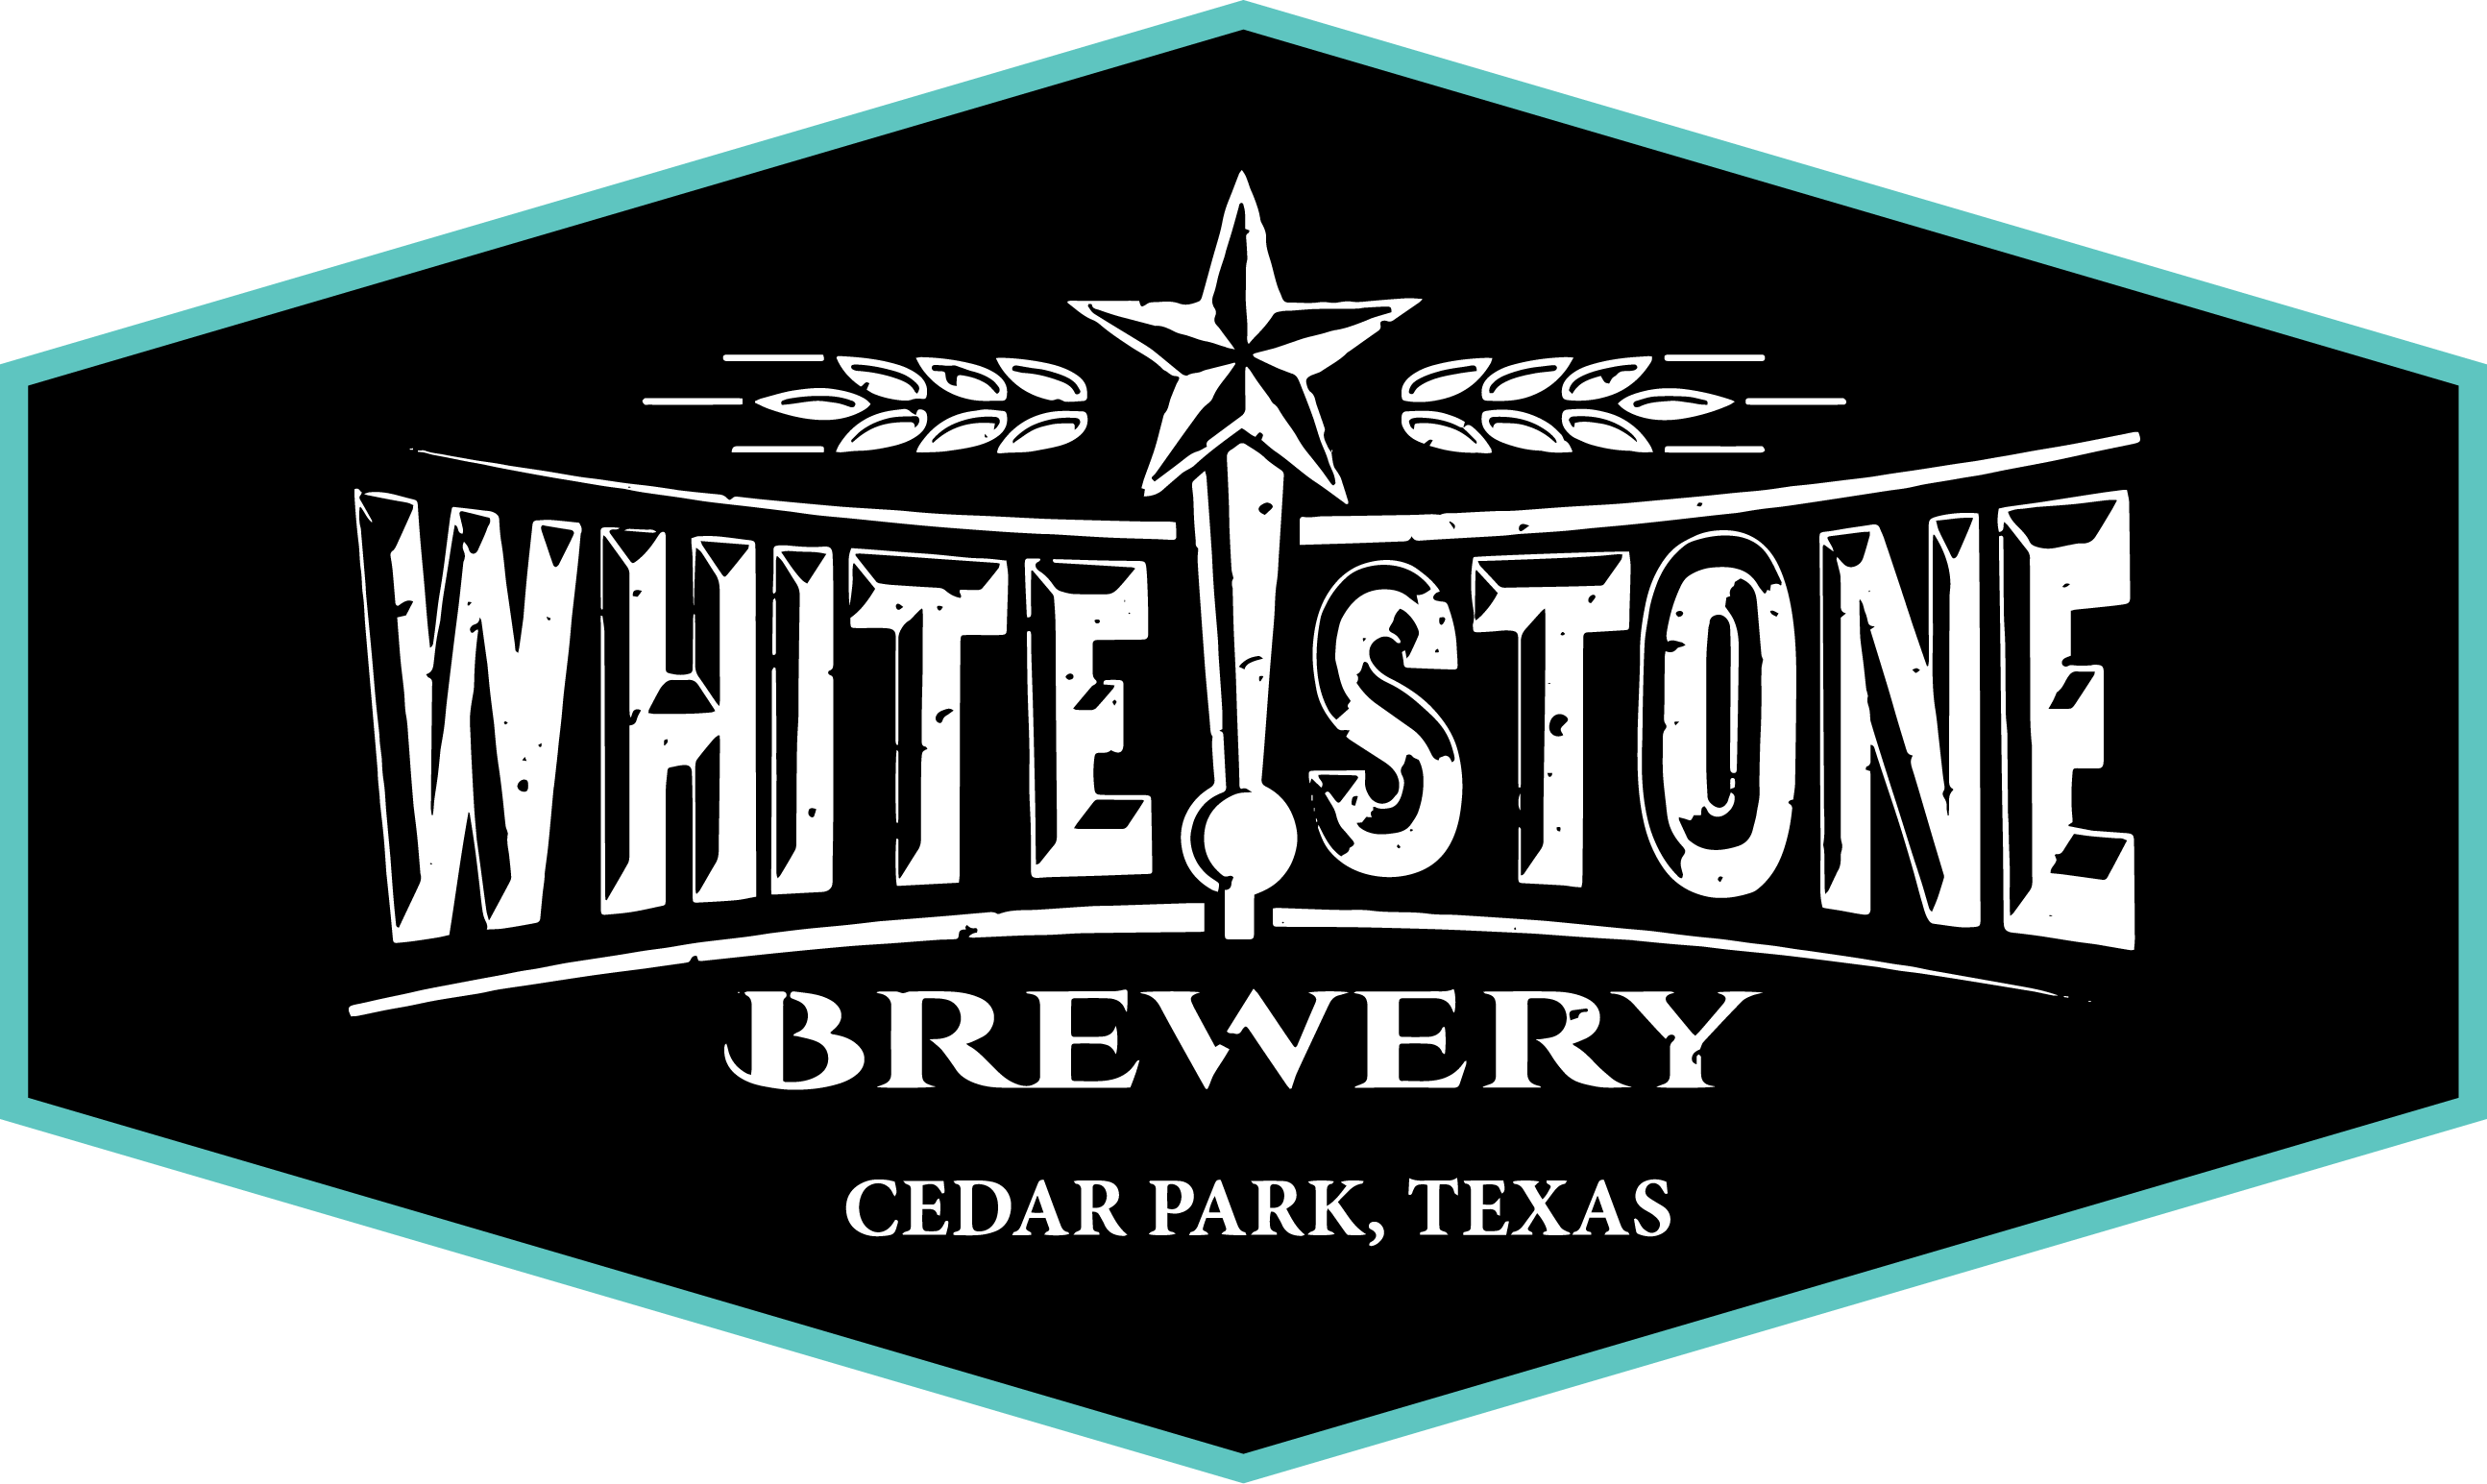 Whitestone Brewery logo